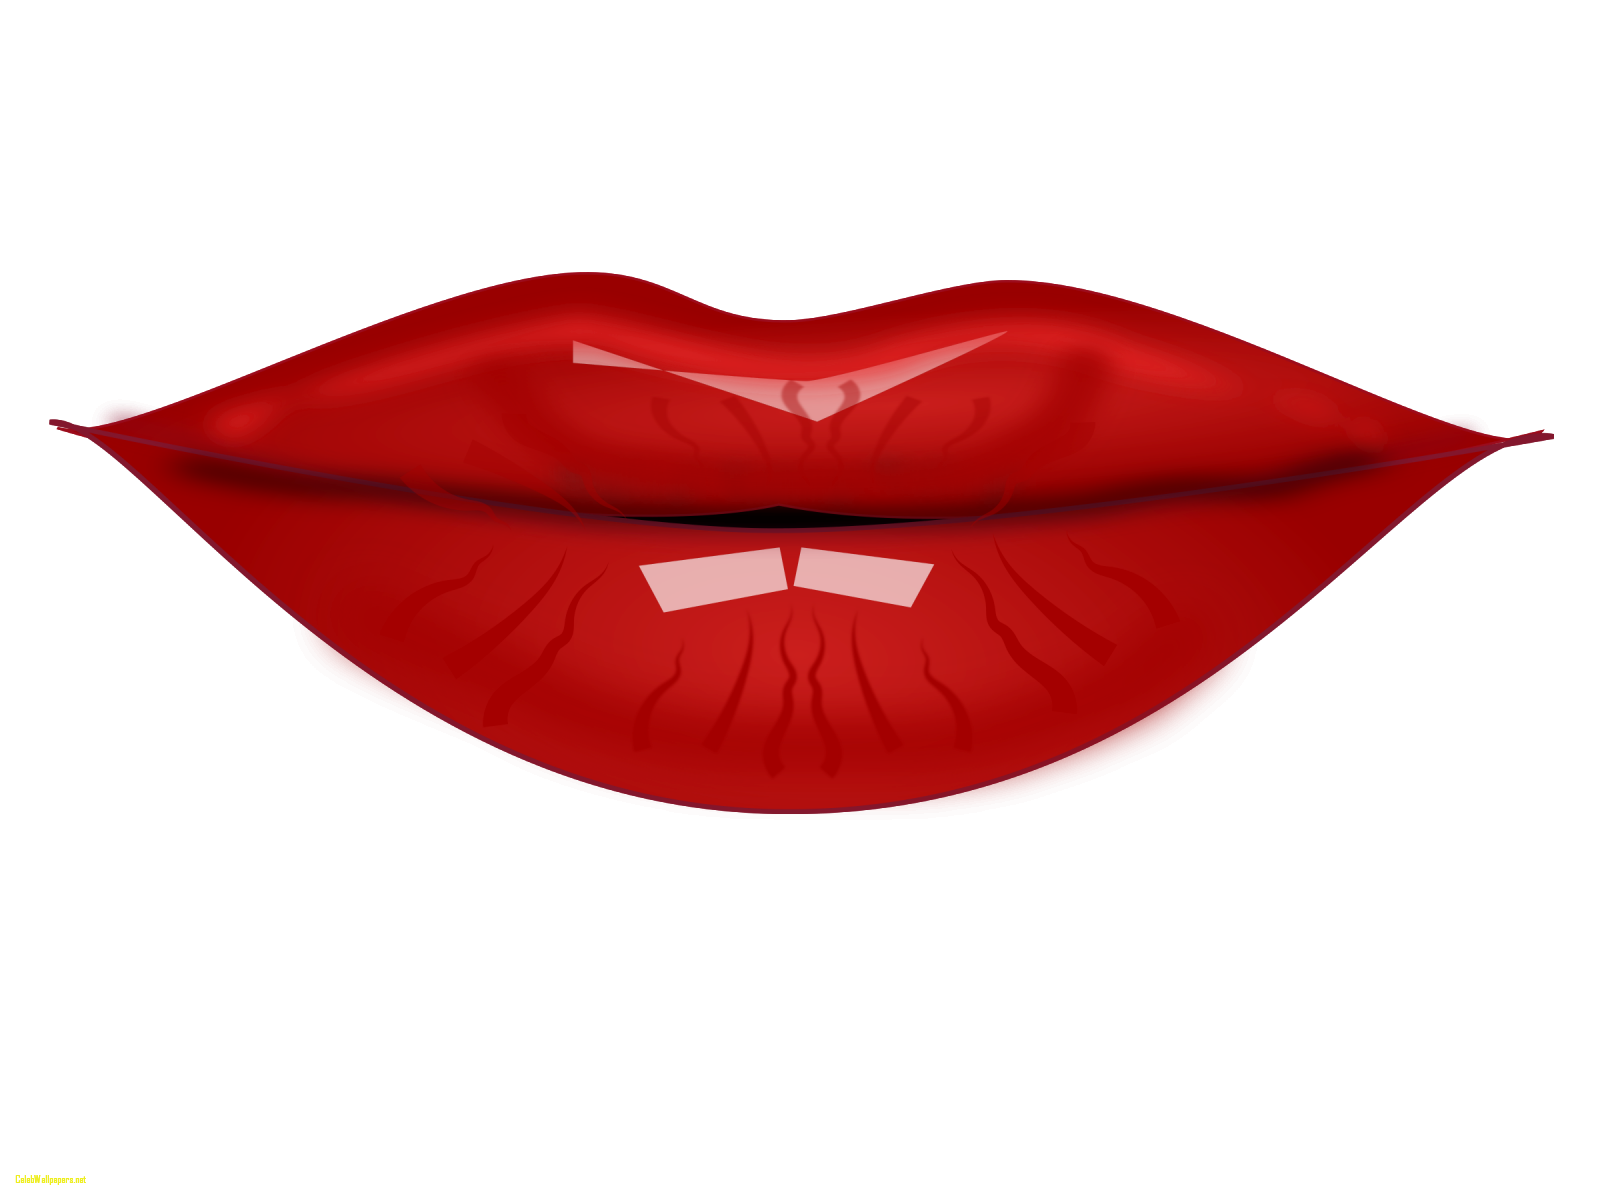 Lip clipart simple lip. Lips animated pencil and